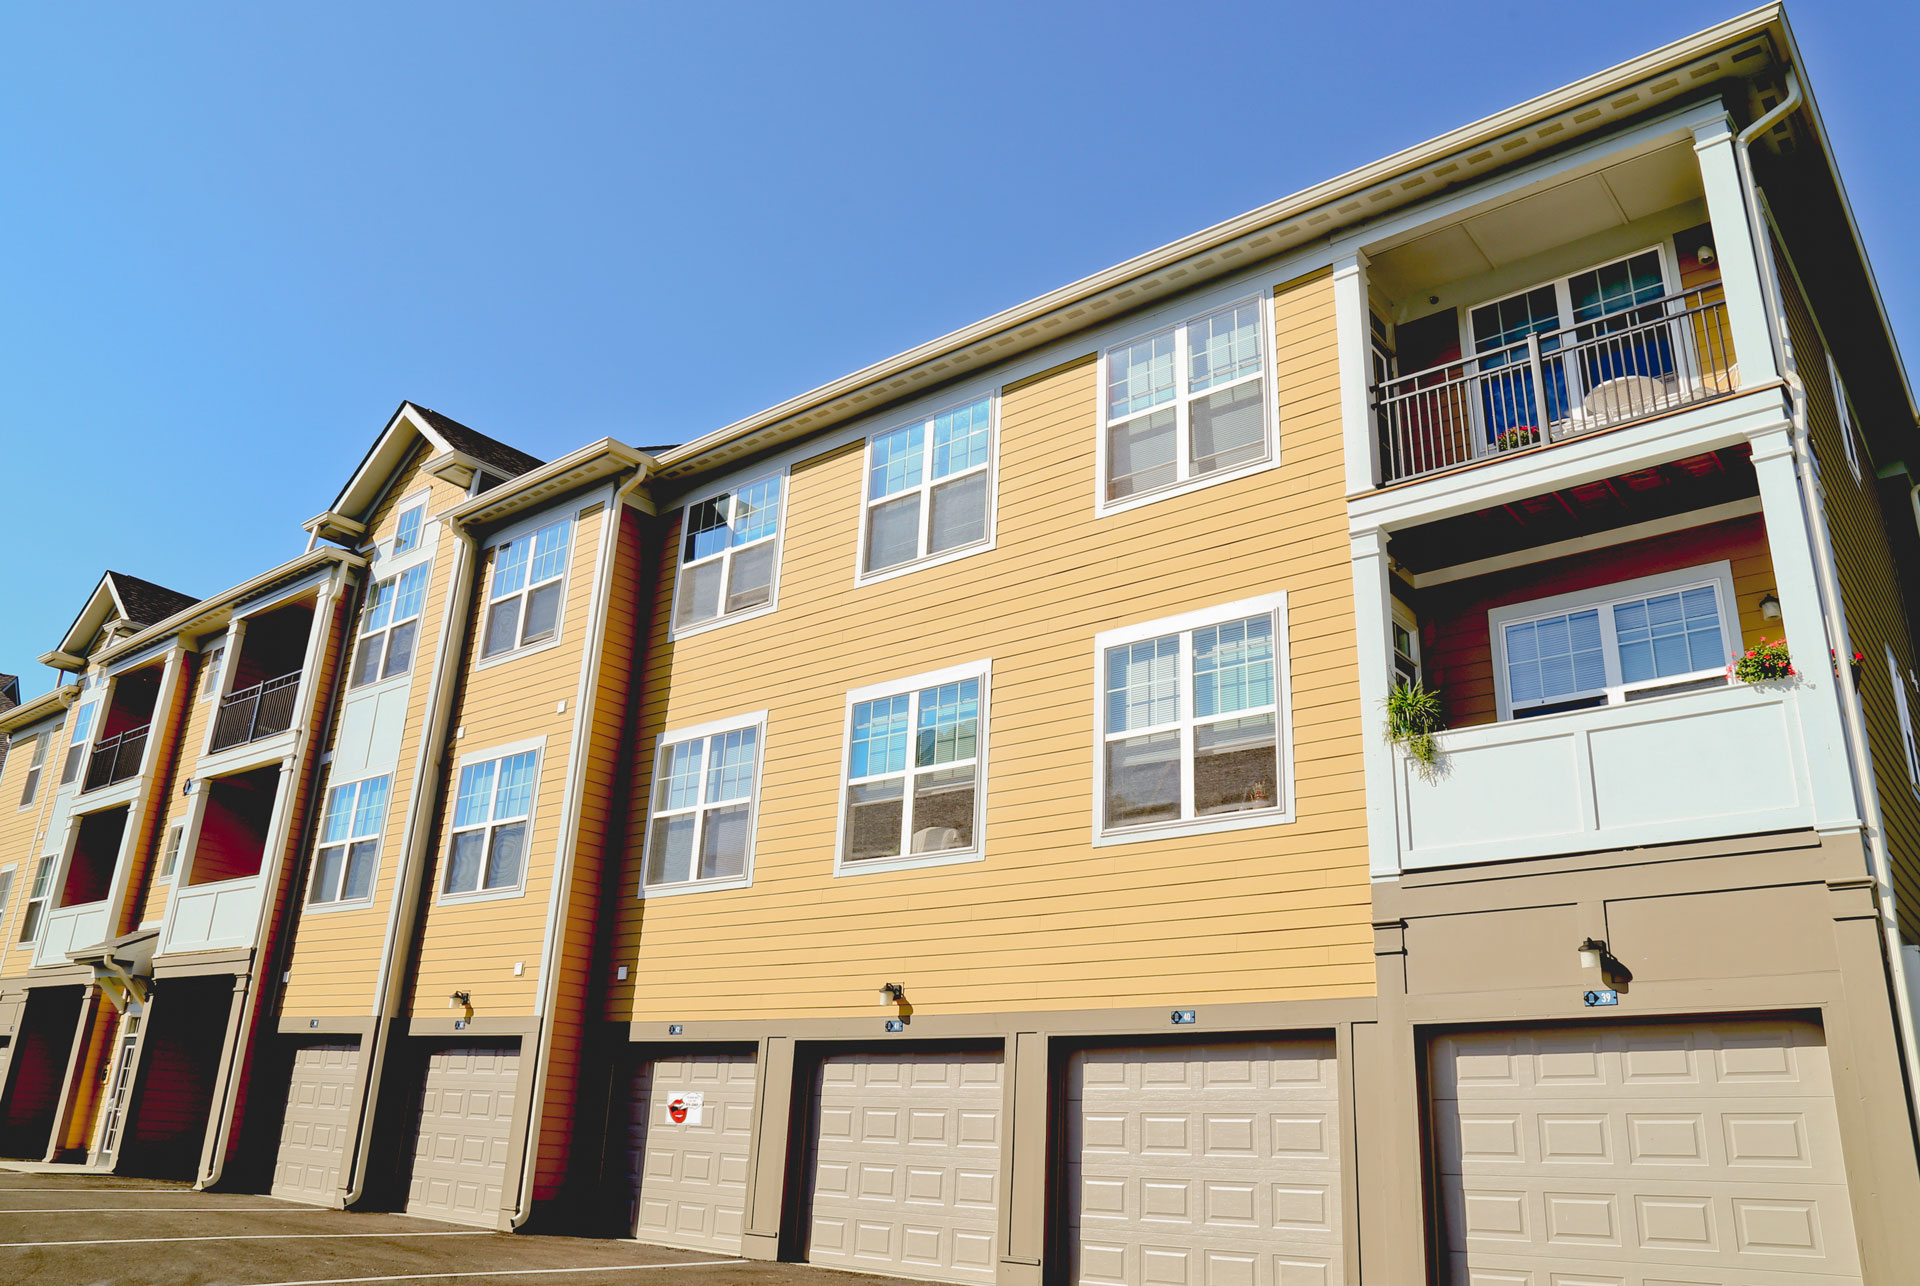 20-Apartments-in-Westfield-Carme-Noblesville-Union-Street-Flats-garages.jpg